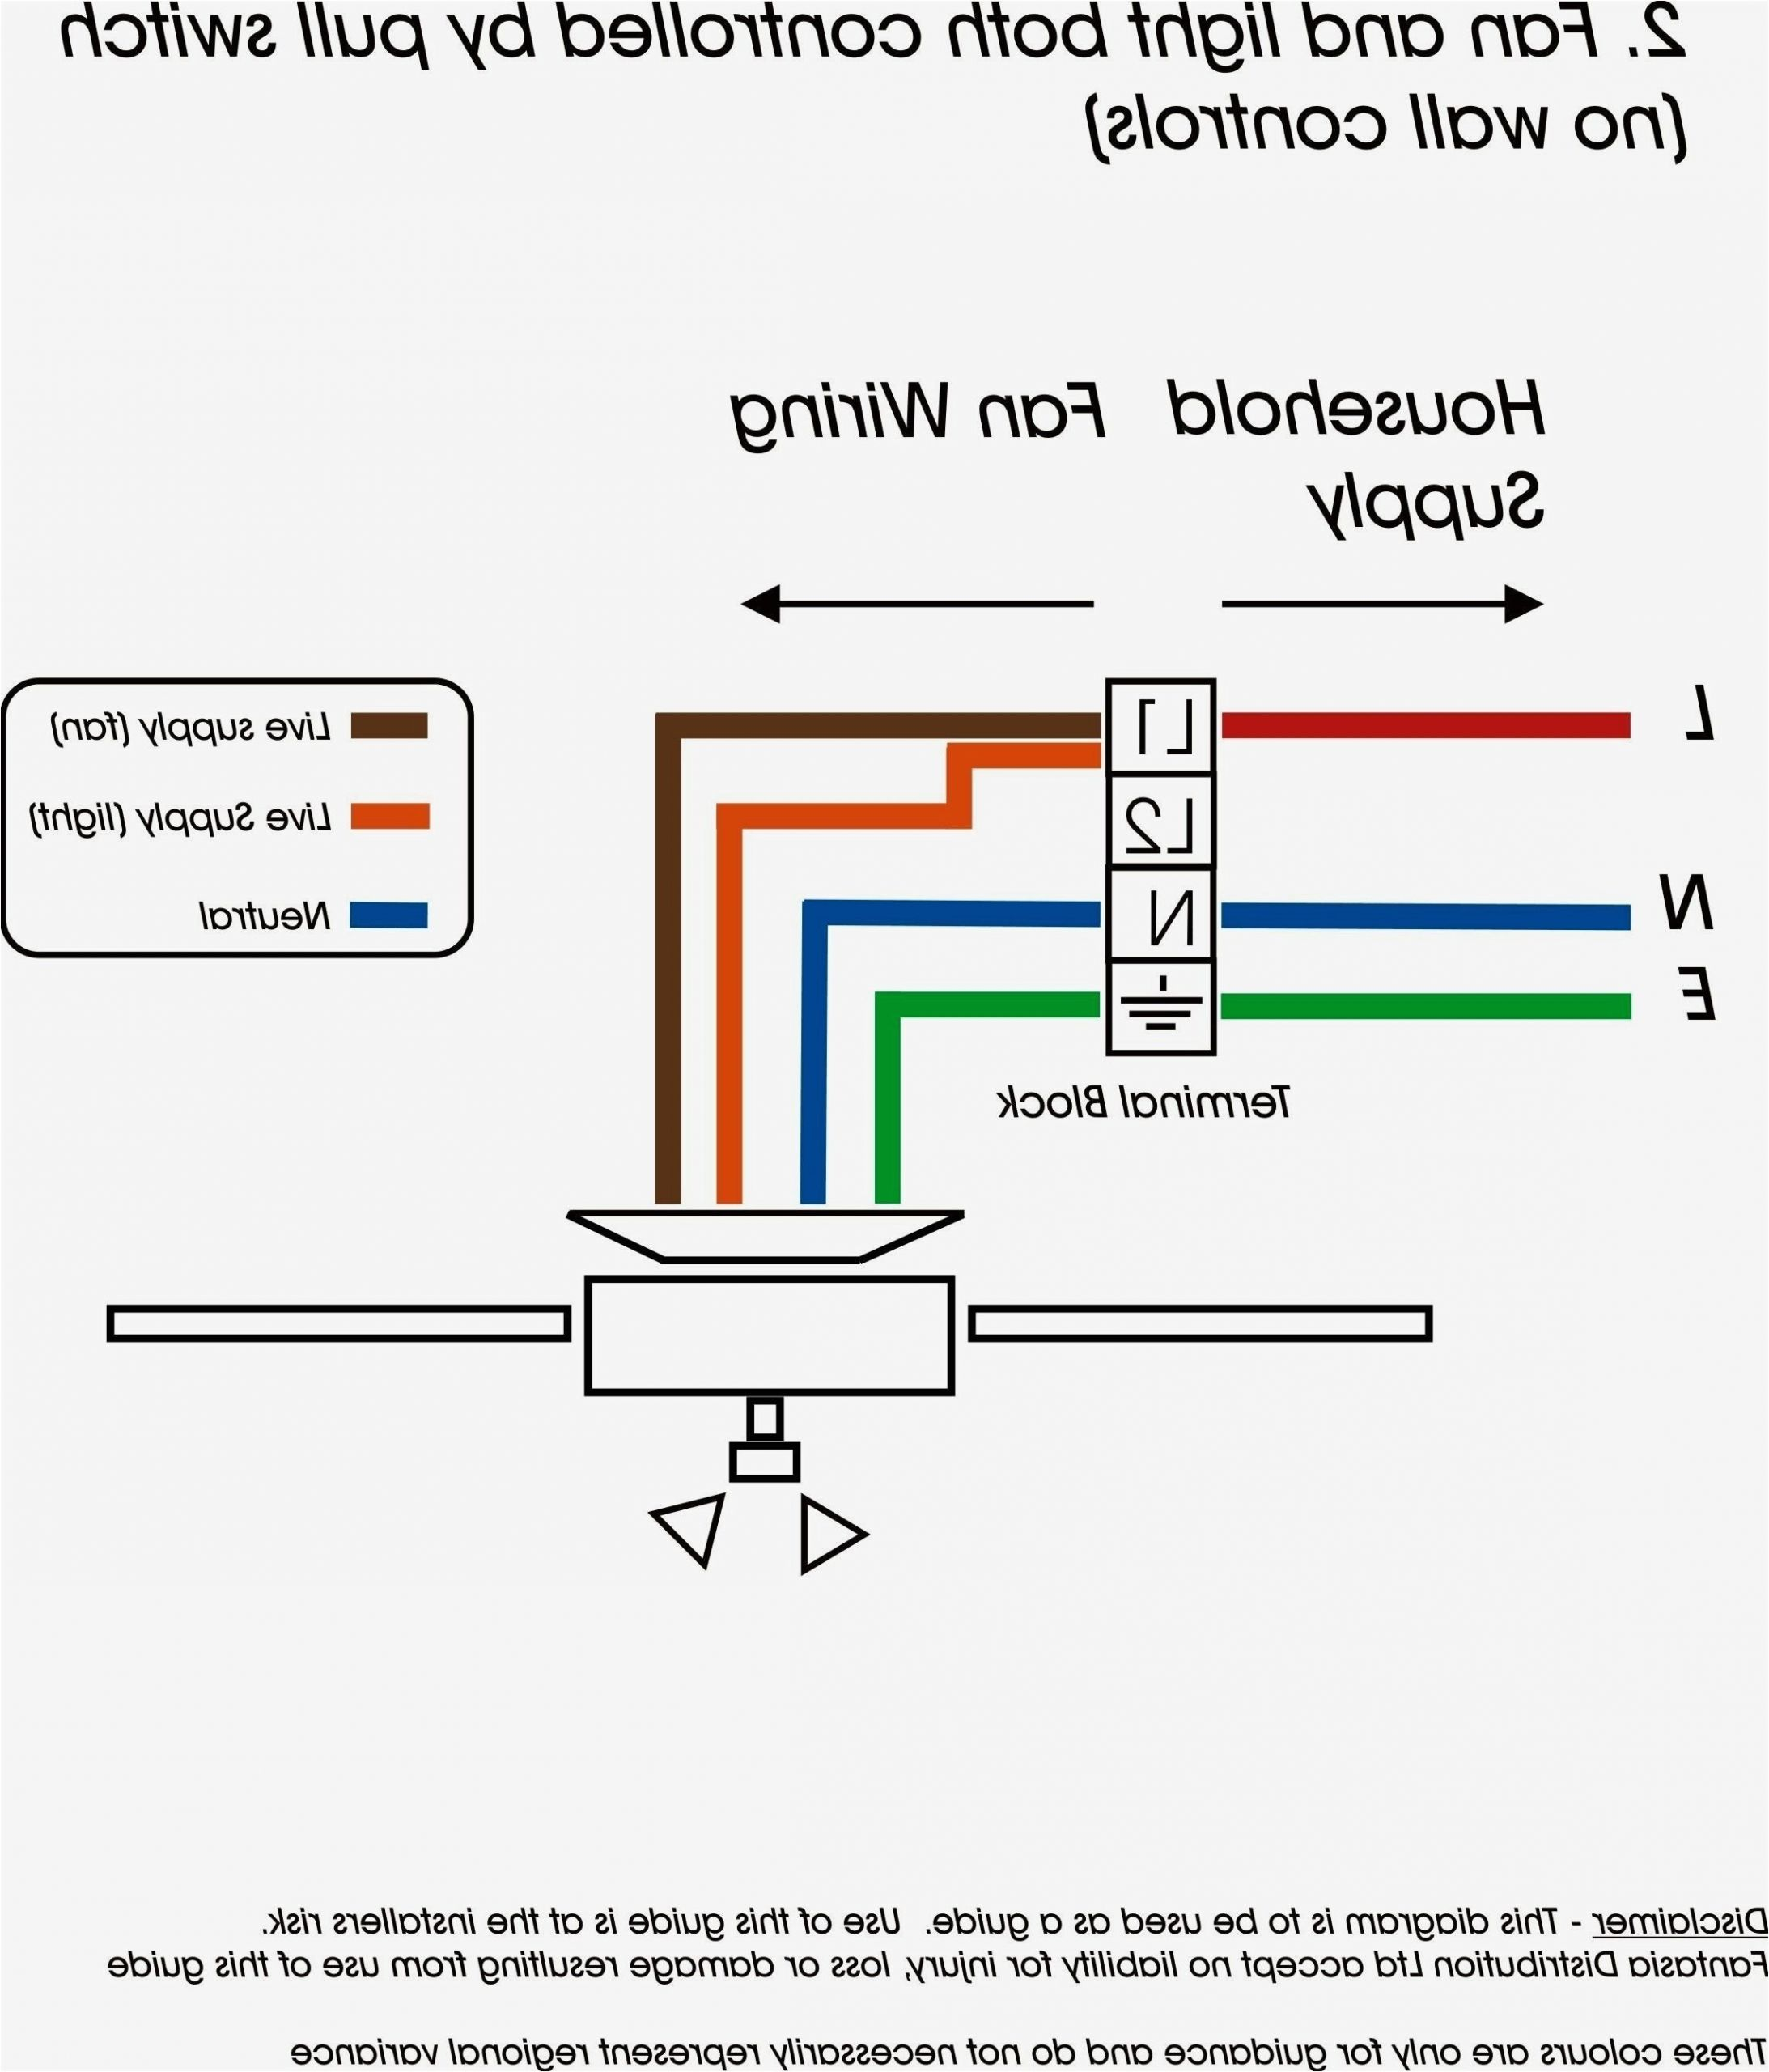 legrand paddle switch wiring diagram rotary switch wiring diagram download fan isolator pull switch wiring diagram valid 3 way rotary 9a jpg